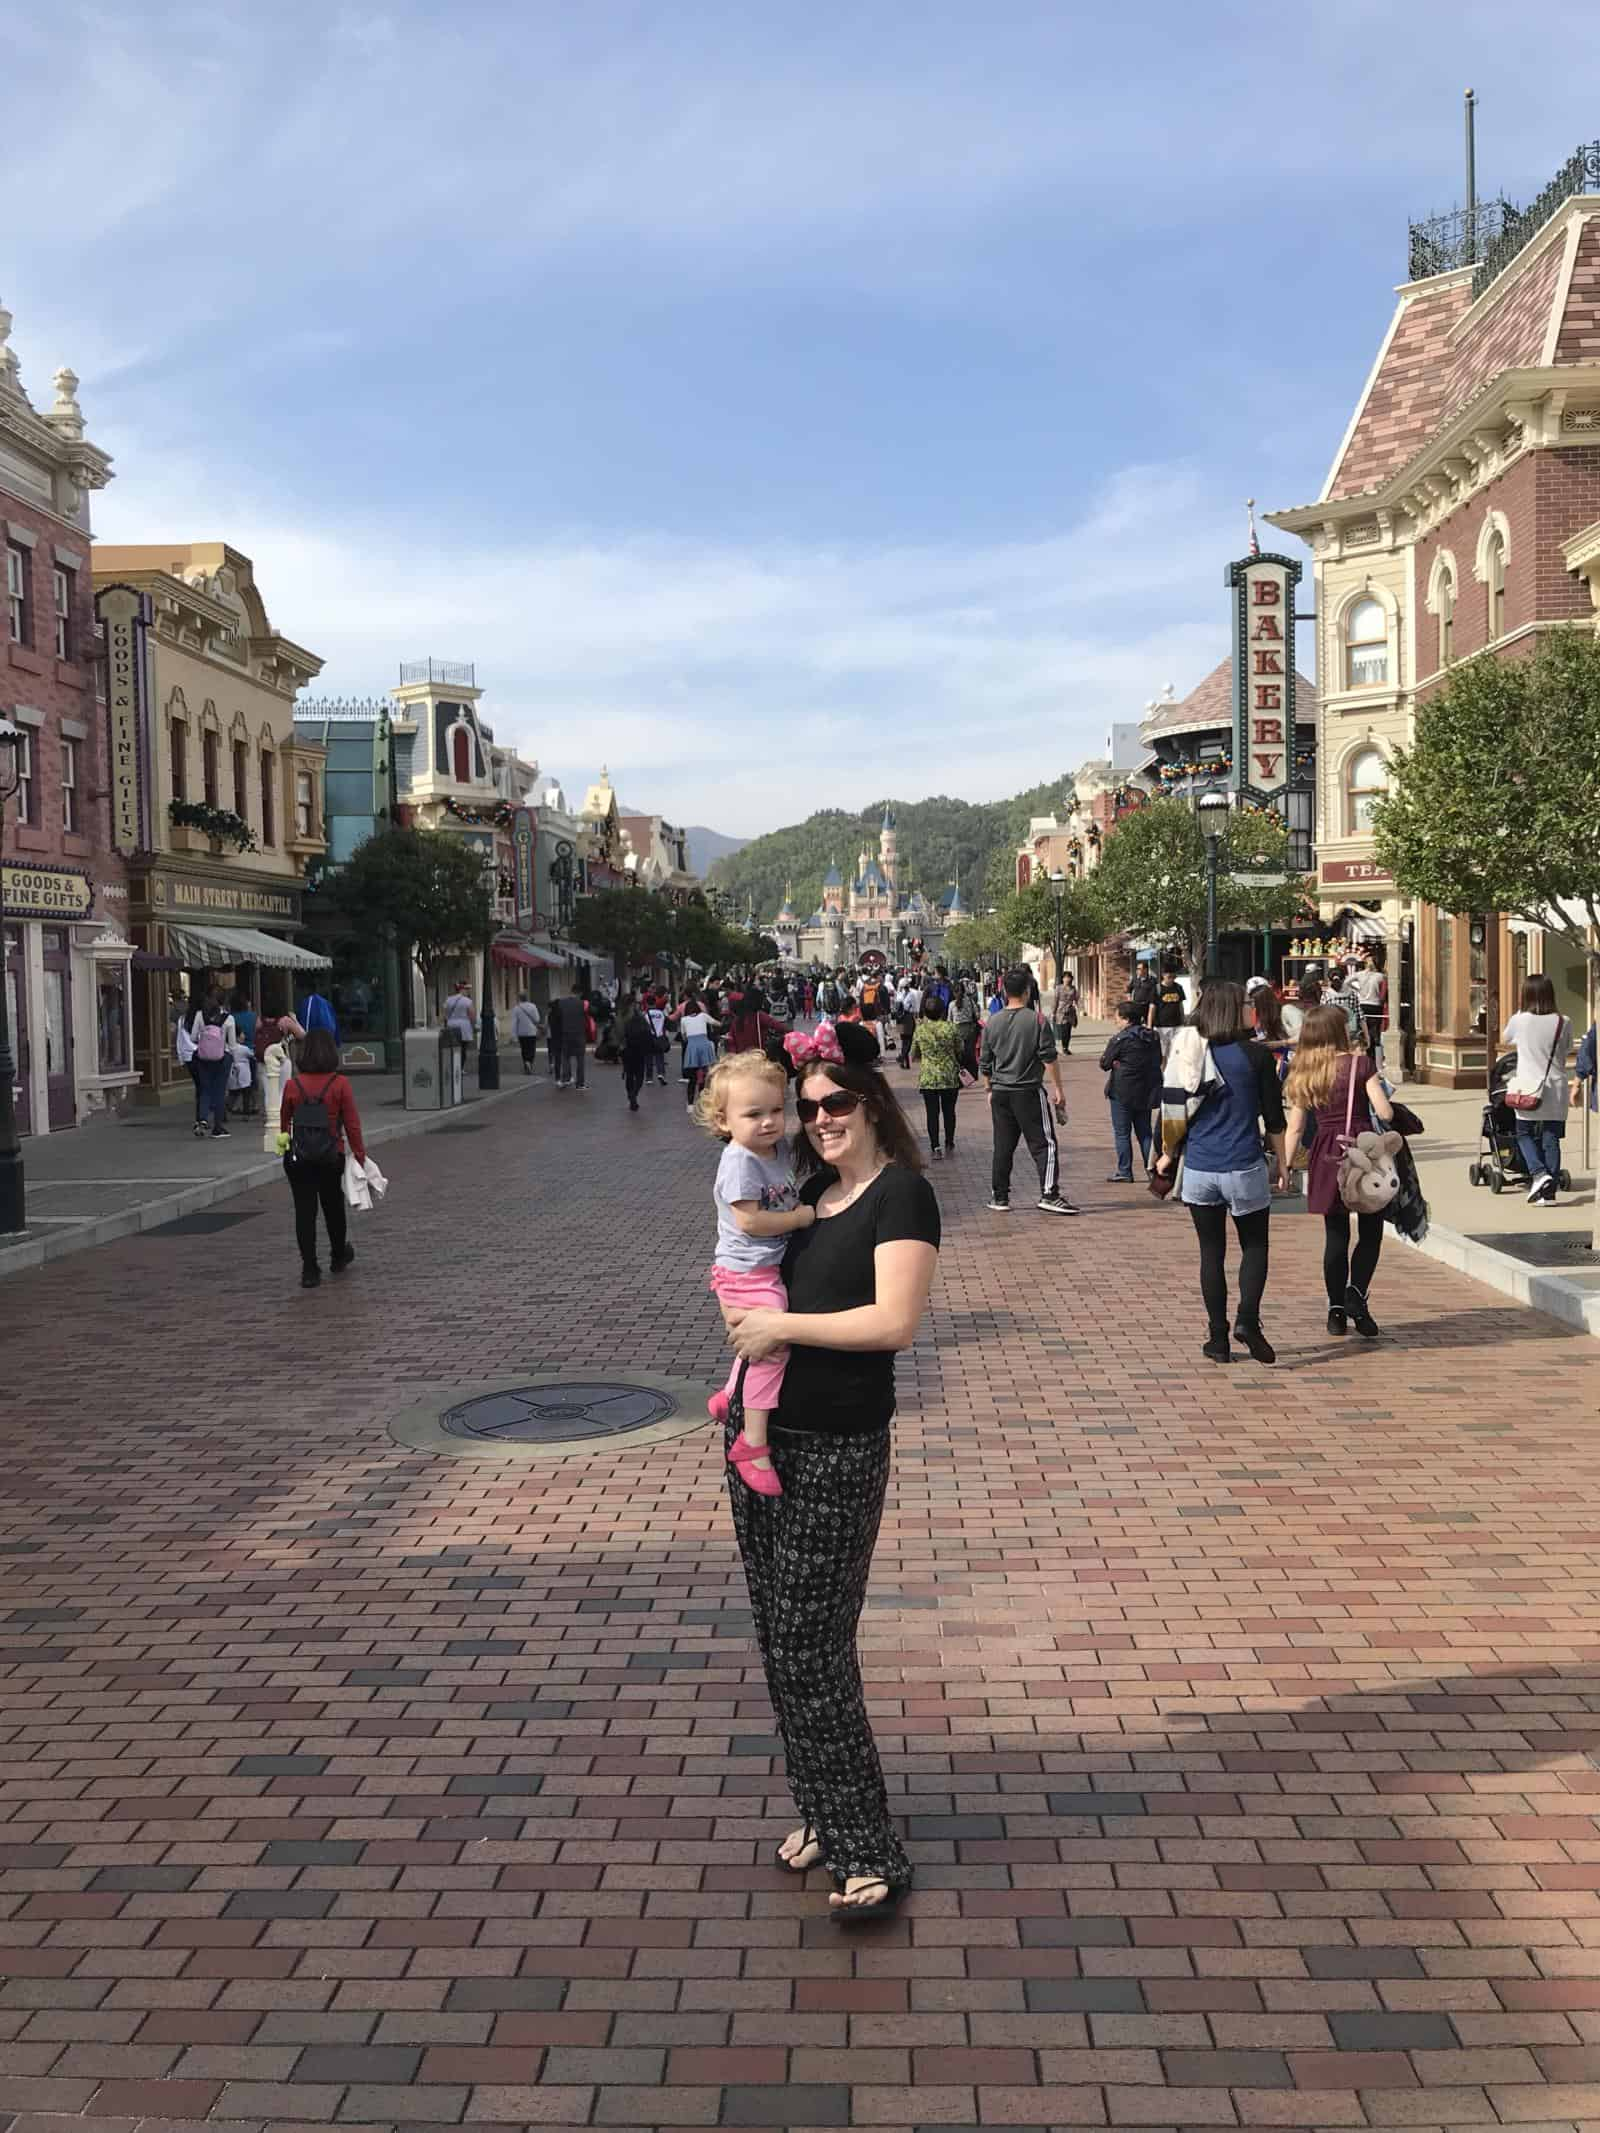 Hong Kong Disneyland with a toddler - hong kong disneyland rides for toddlers